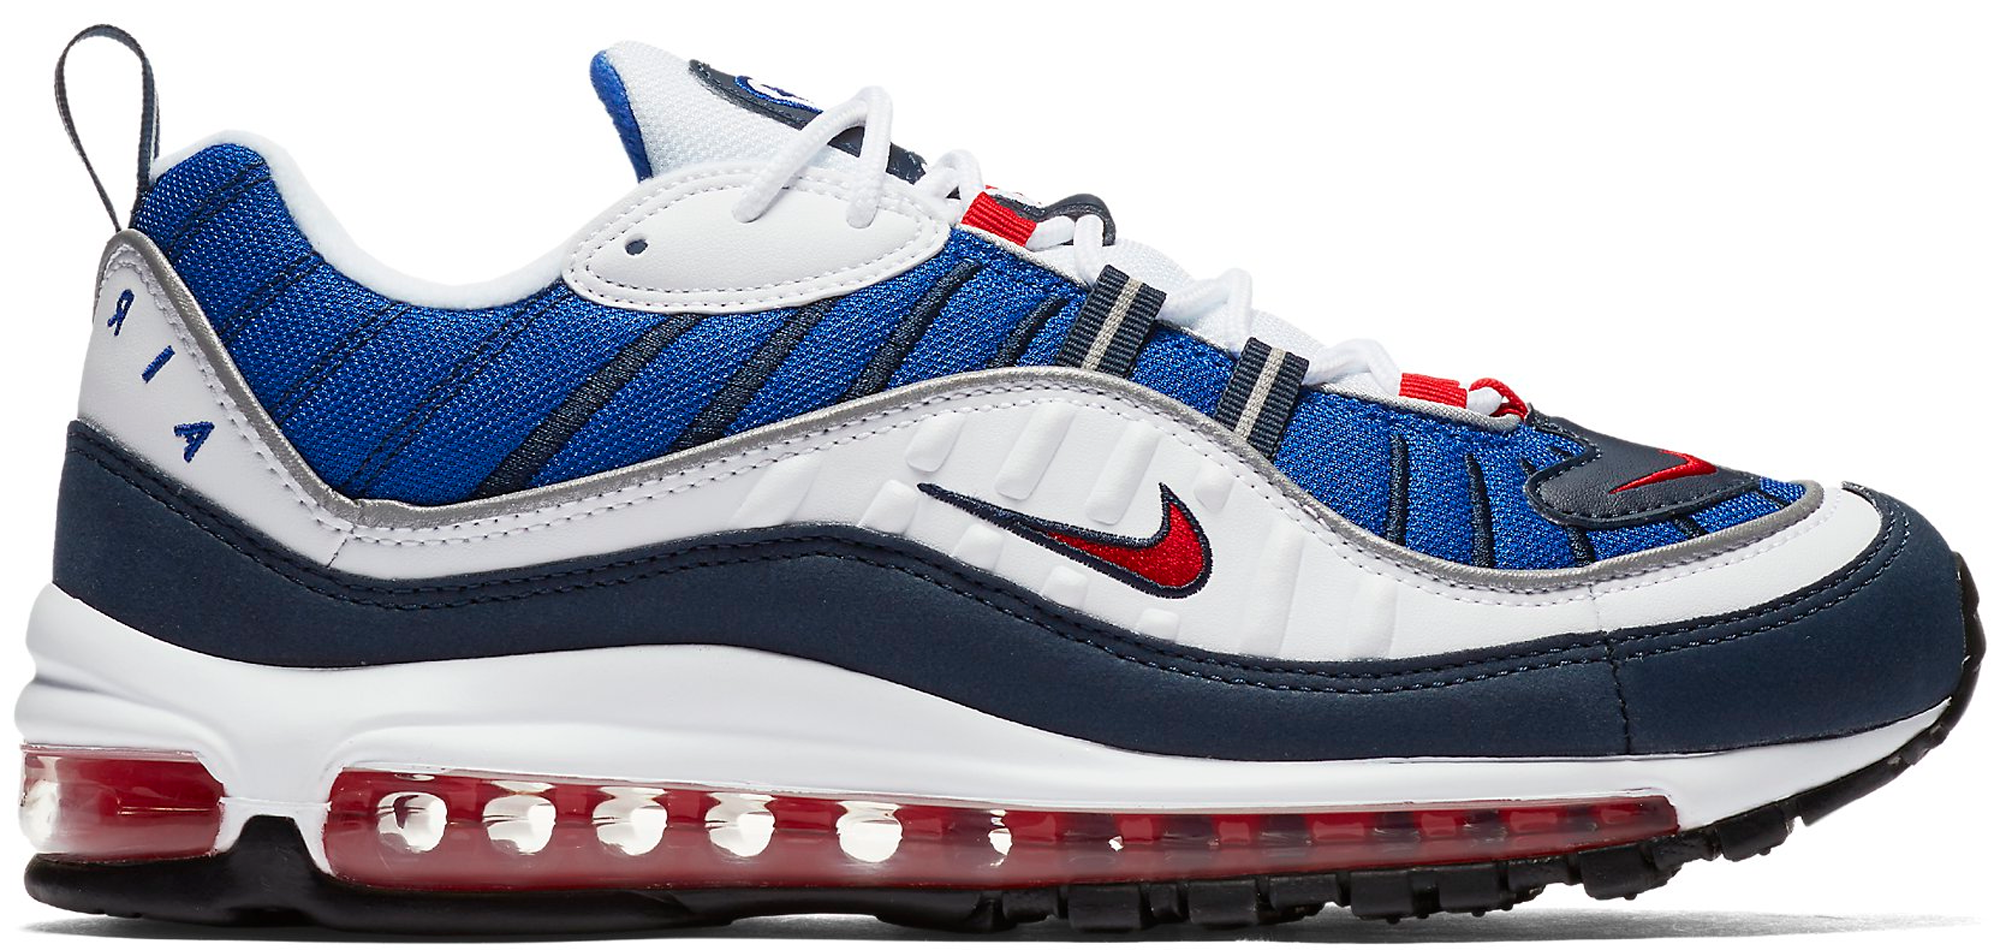 nike air max 98 gundam where to buy